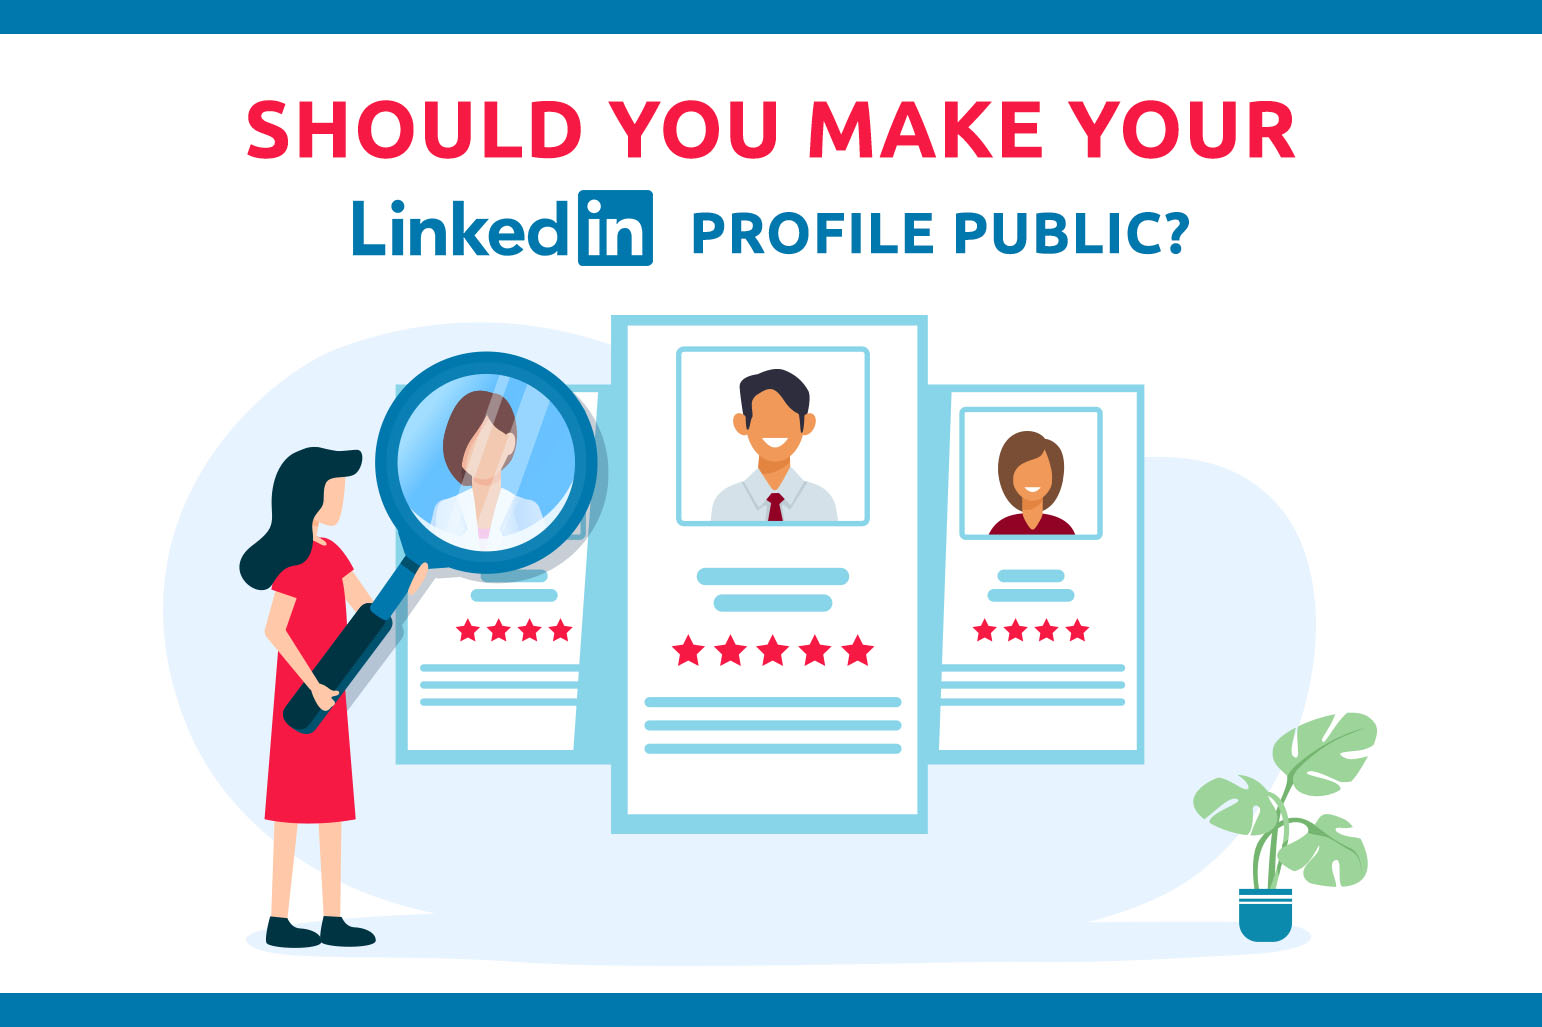 Should You Make Your LinkedIn Profile Public?